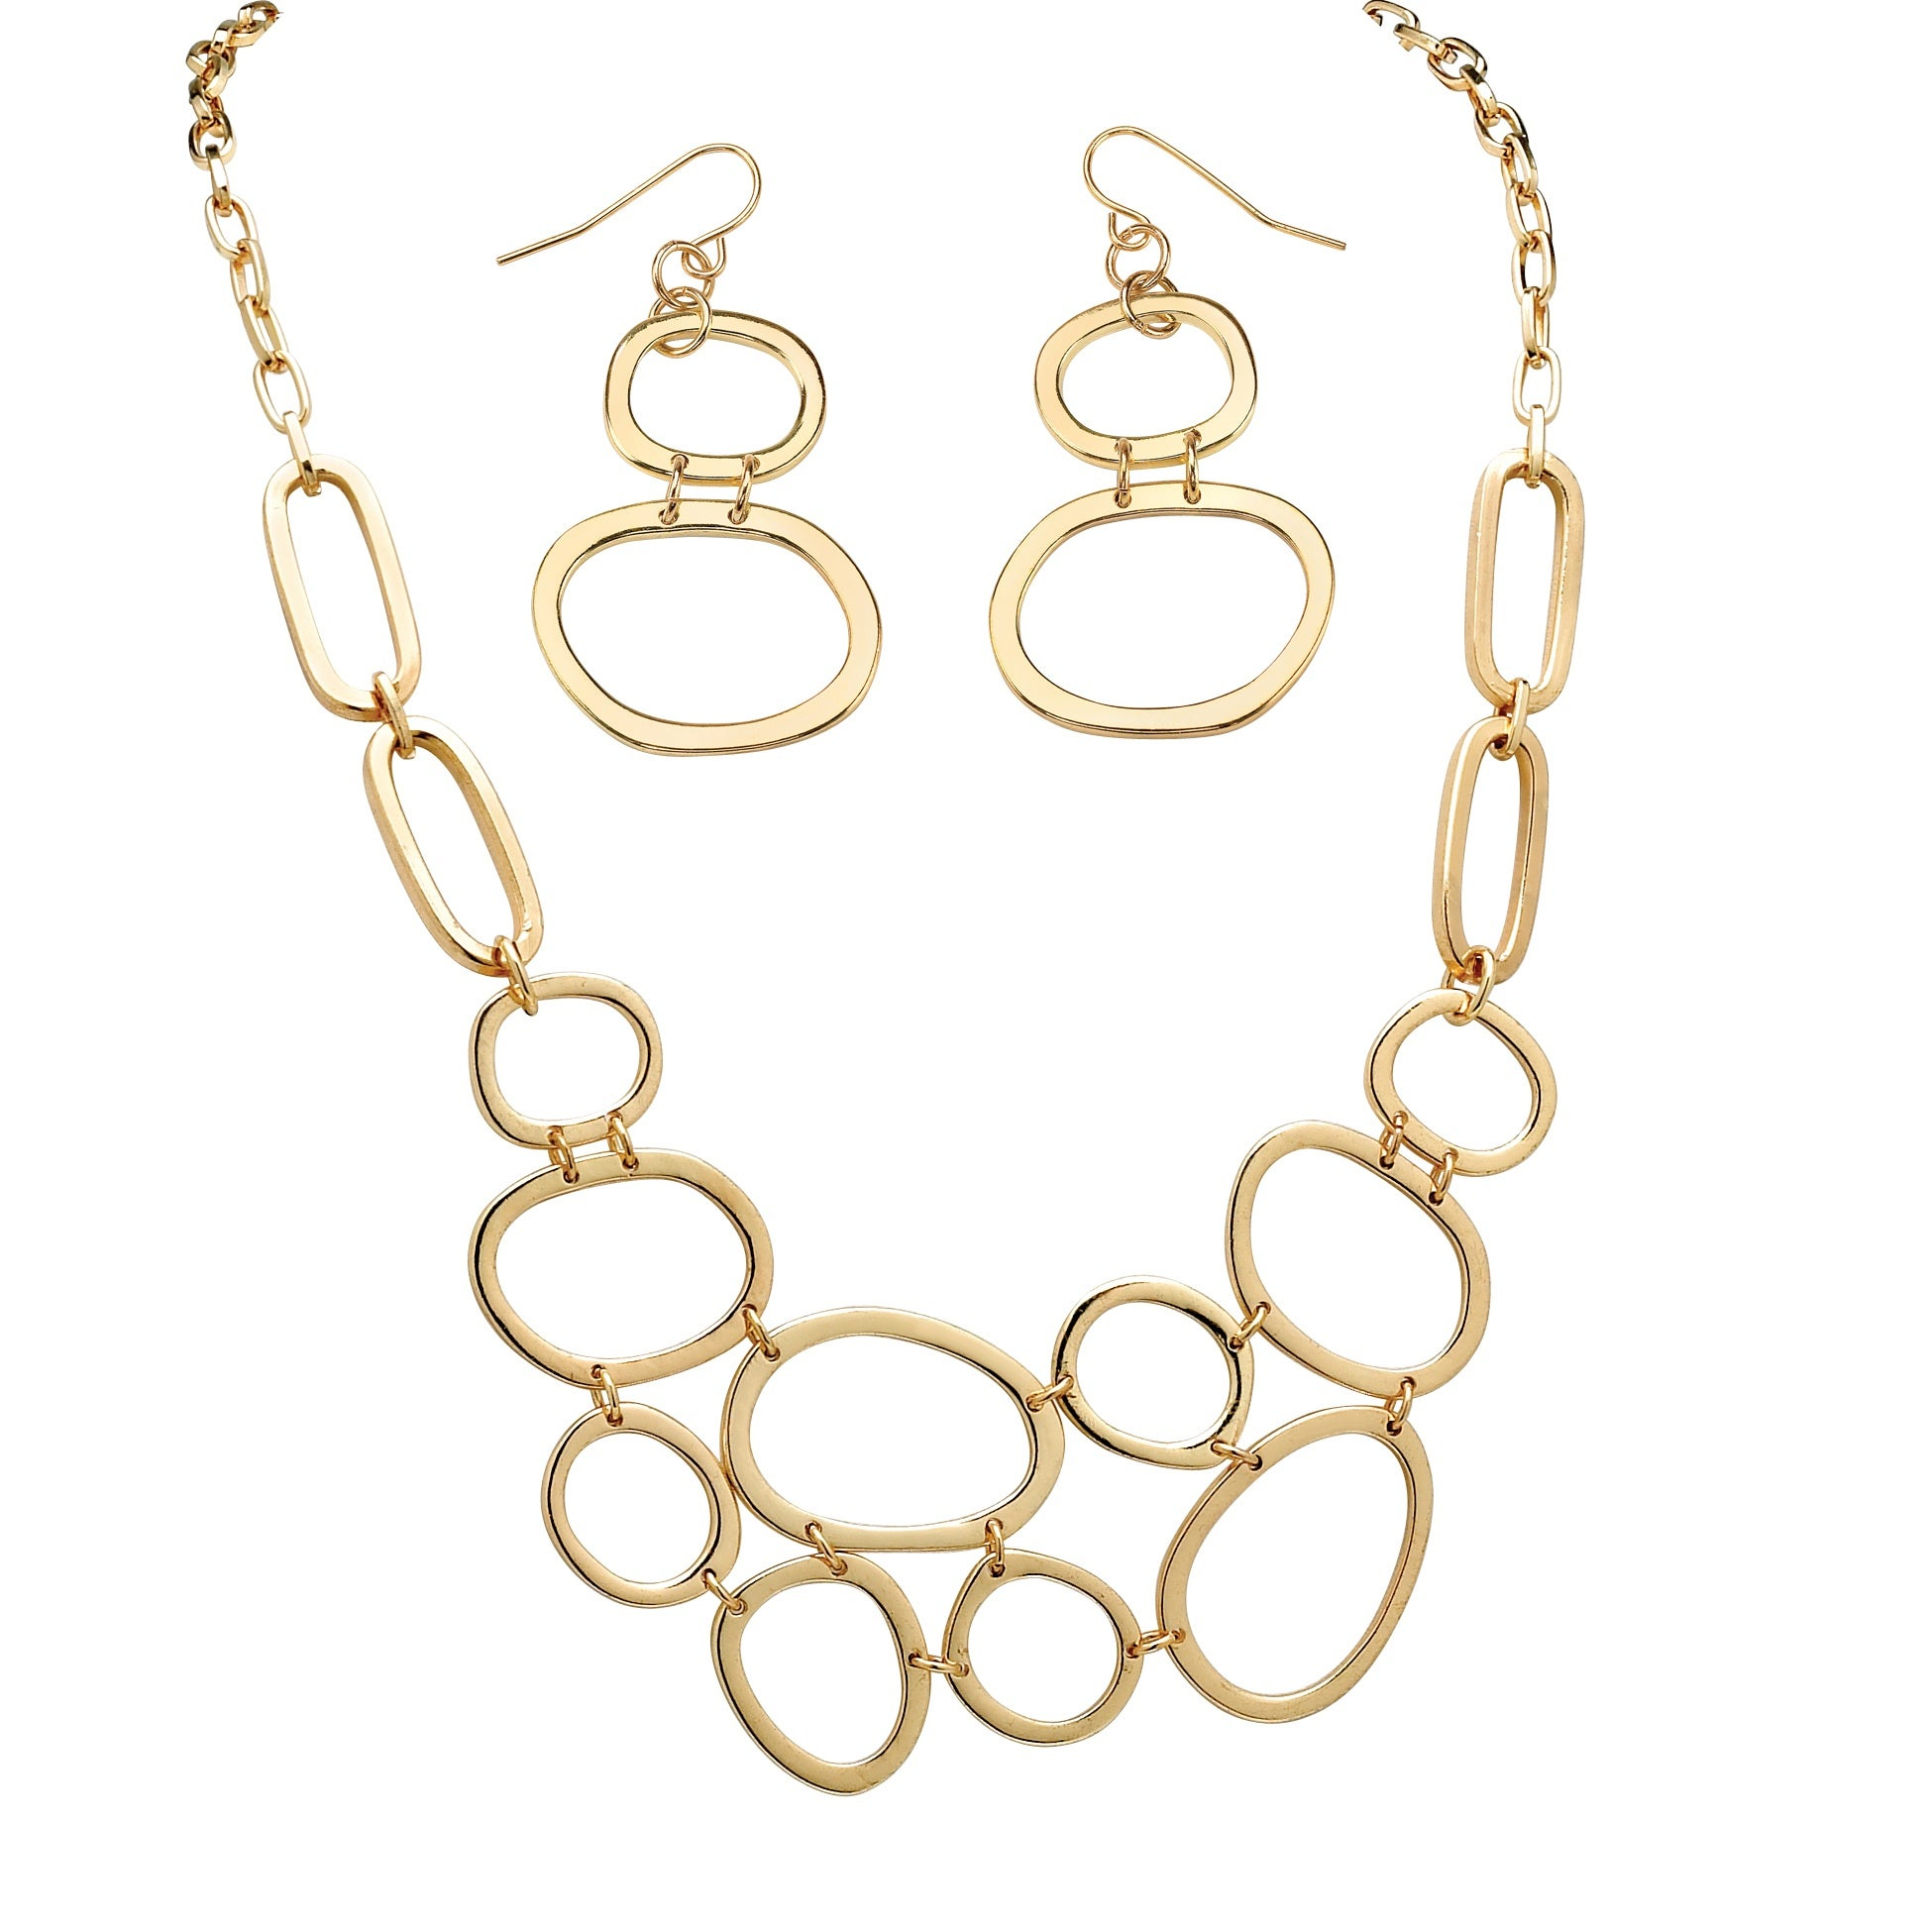 Toscana Collection Gold Overlay Oval Necklace and Earring Set